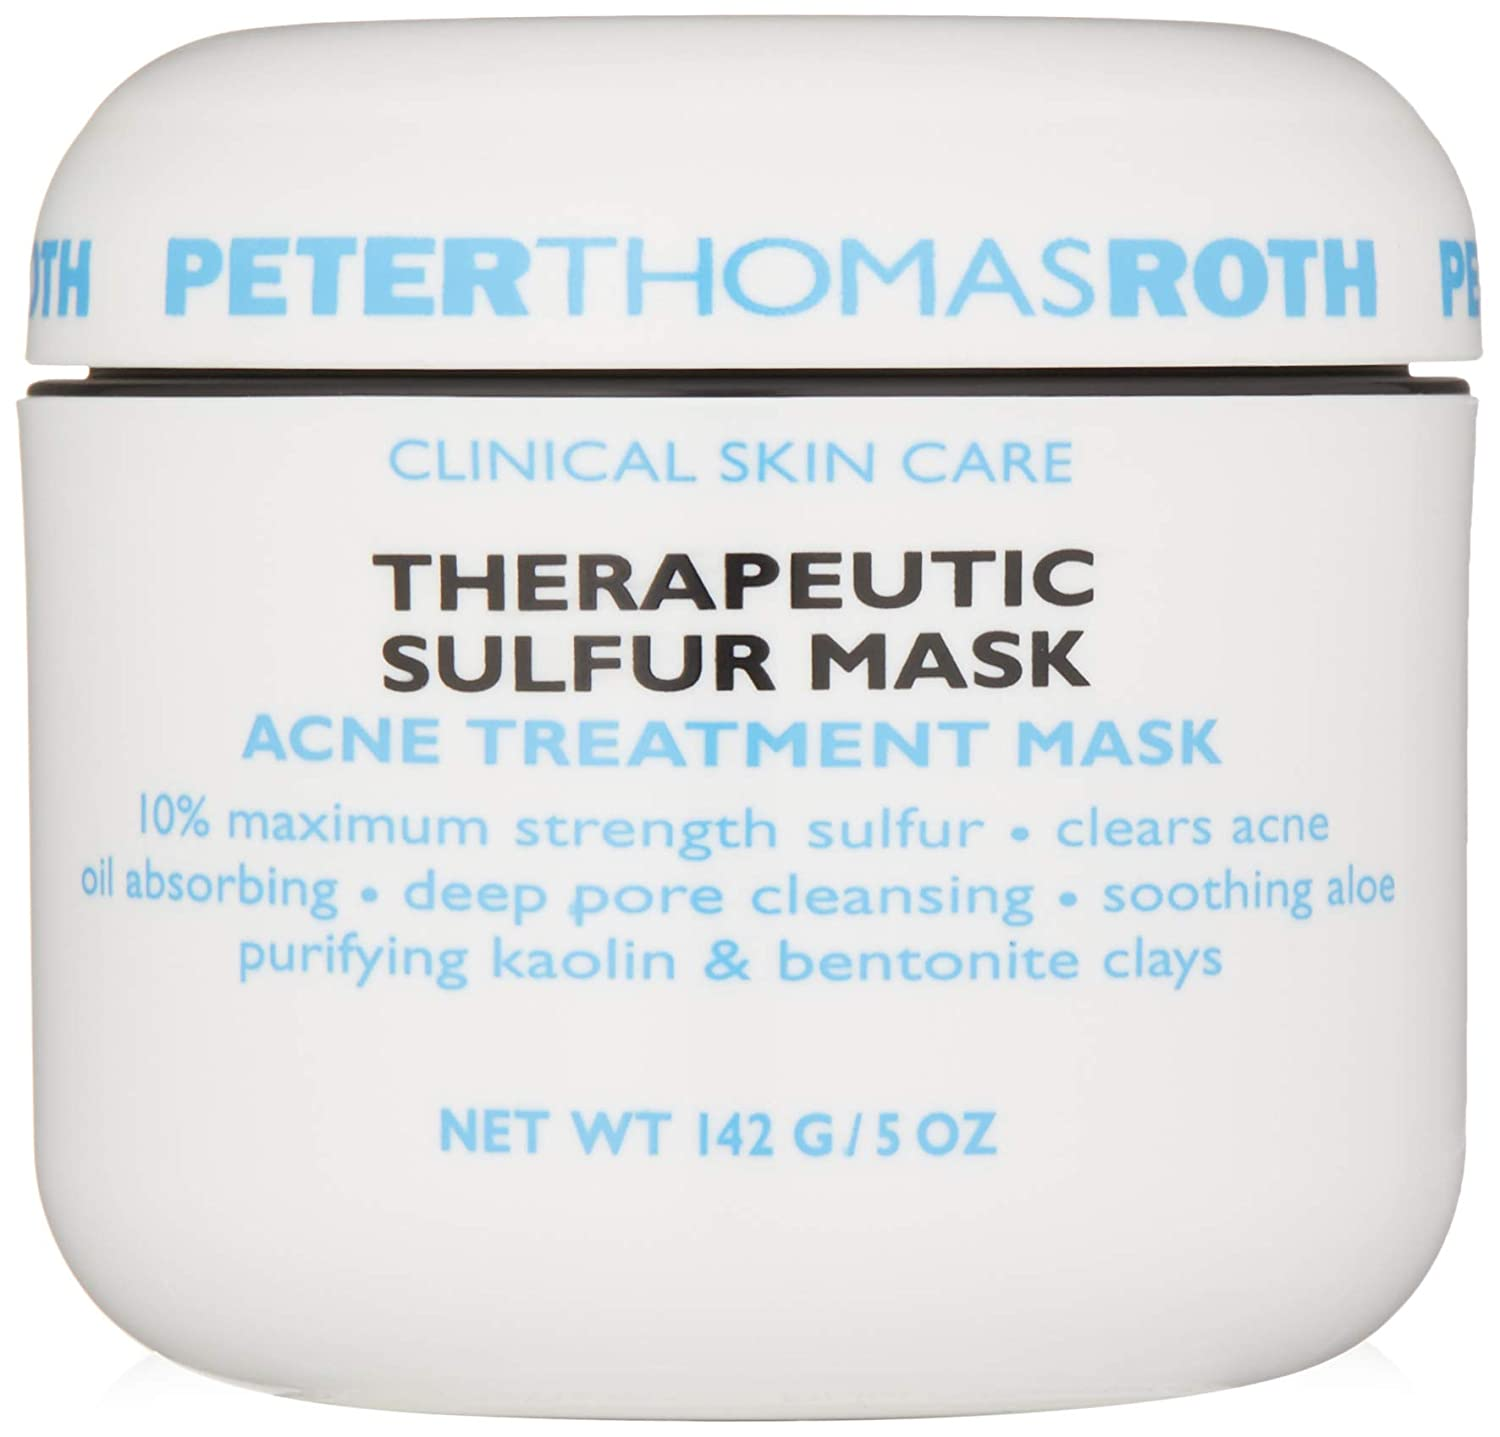 Therapeutic Sulfur Acne Treatment Mask by Peter Thomas Roth